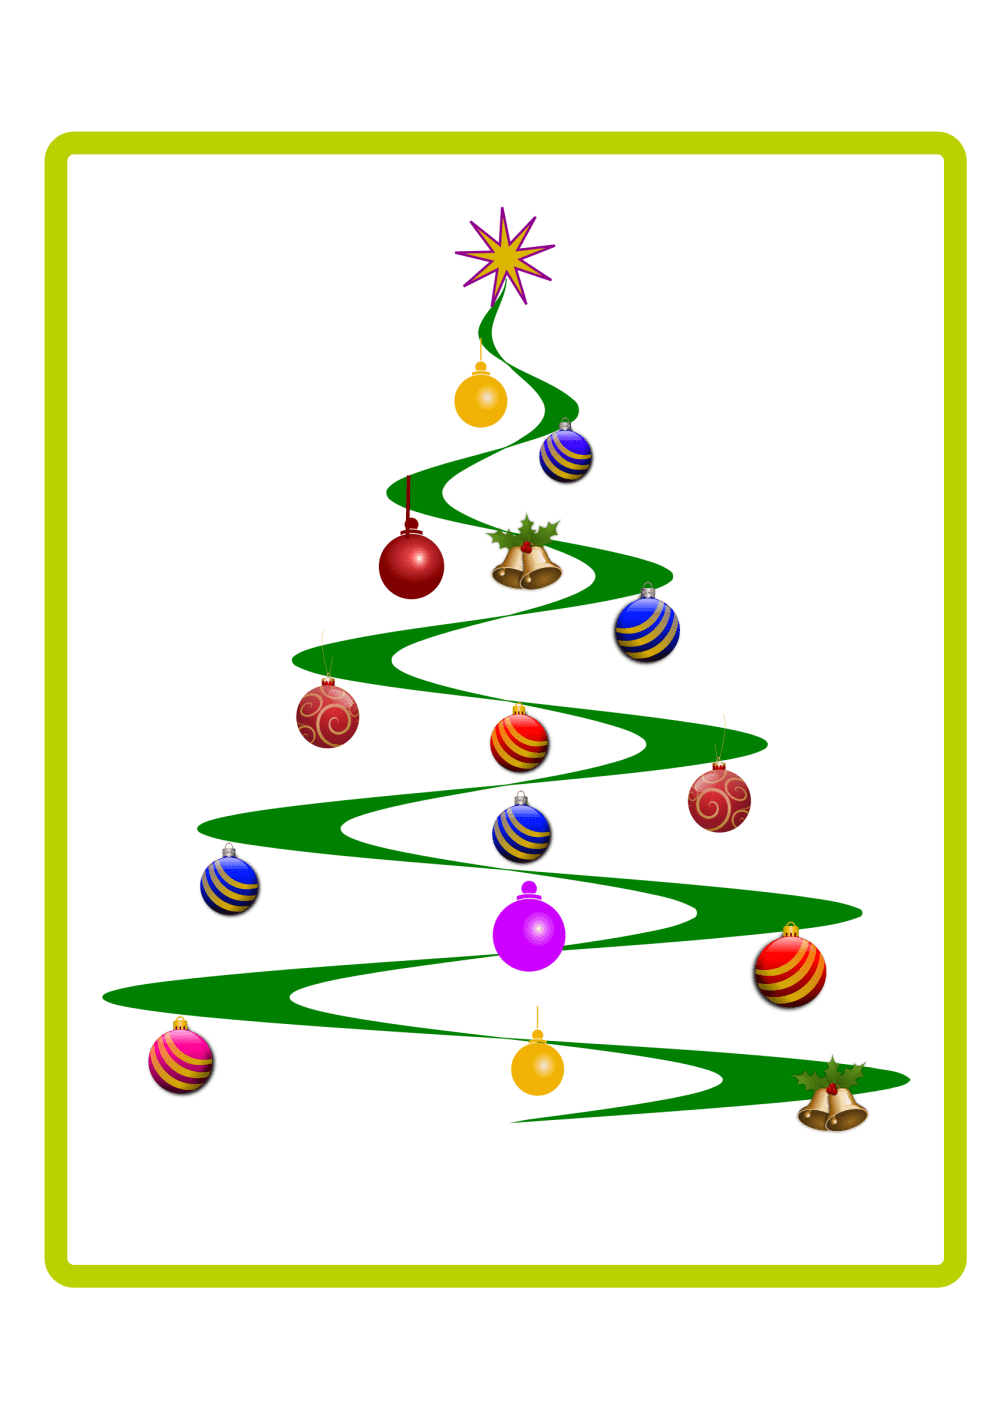 medium resolution of free photos vector images helix christmas tree vector clipart